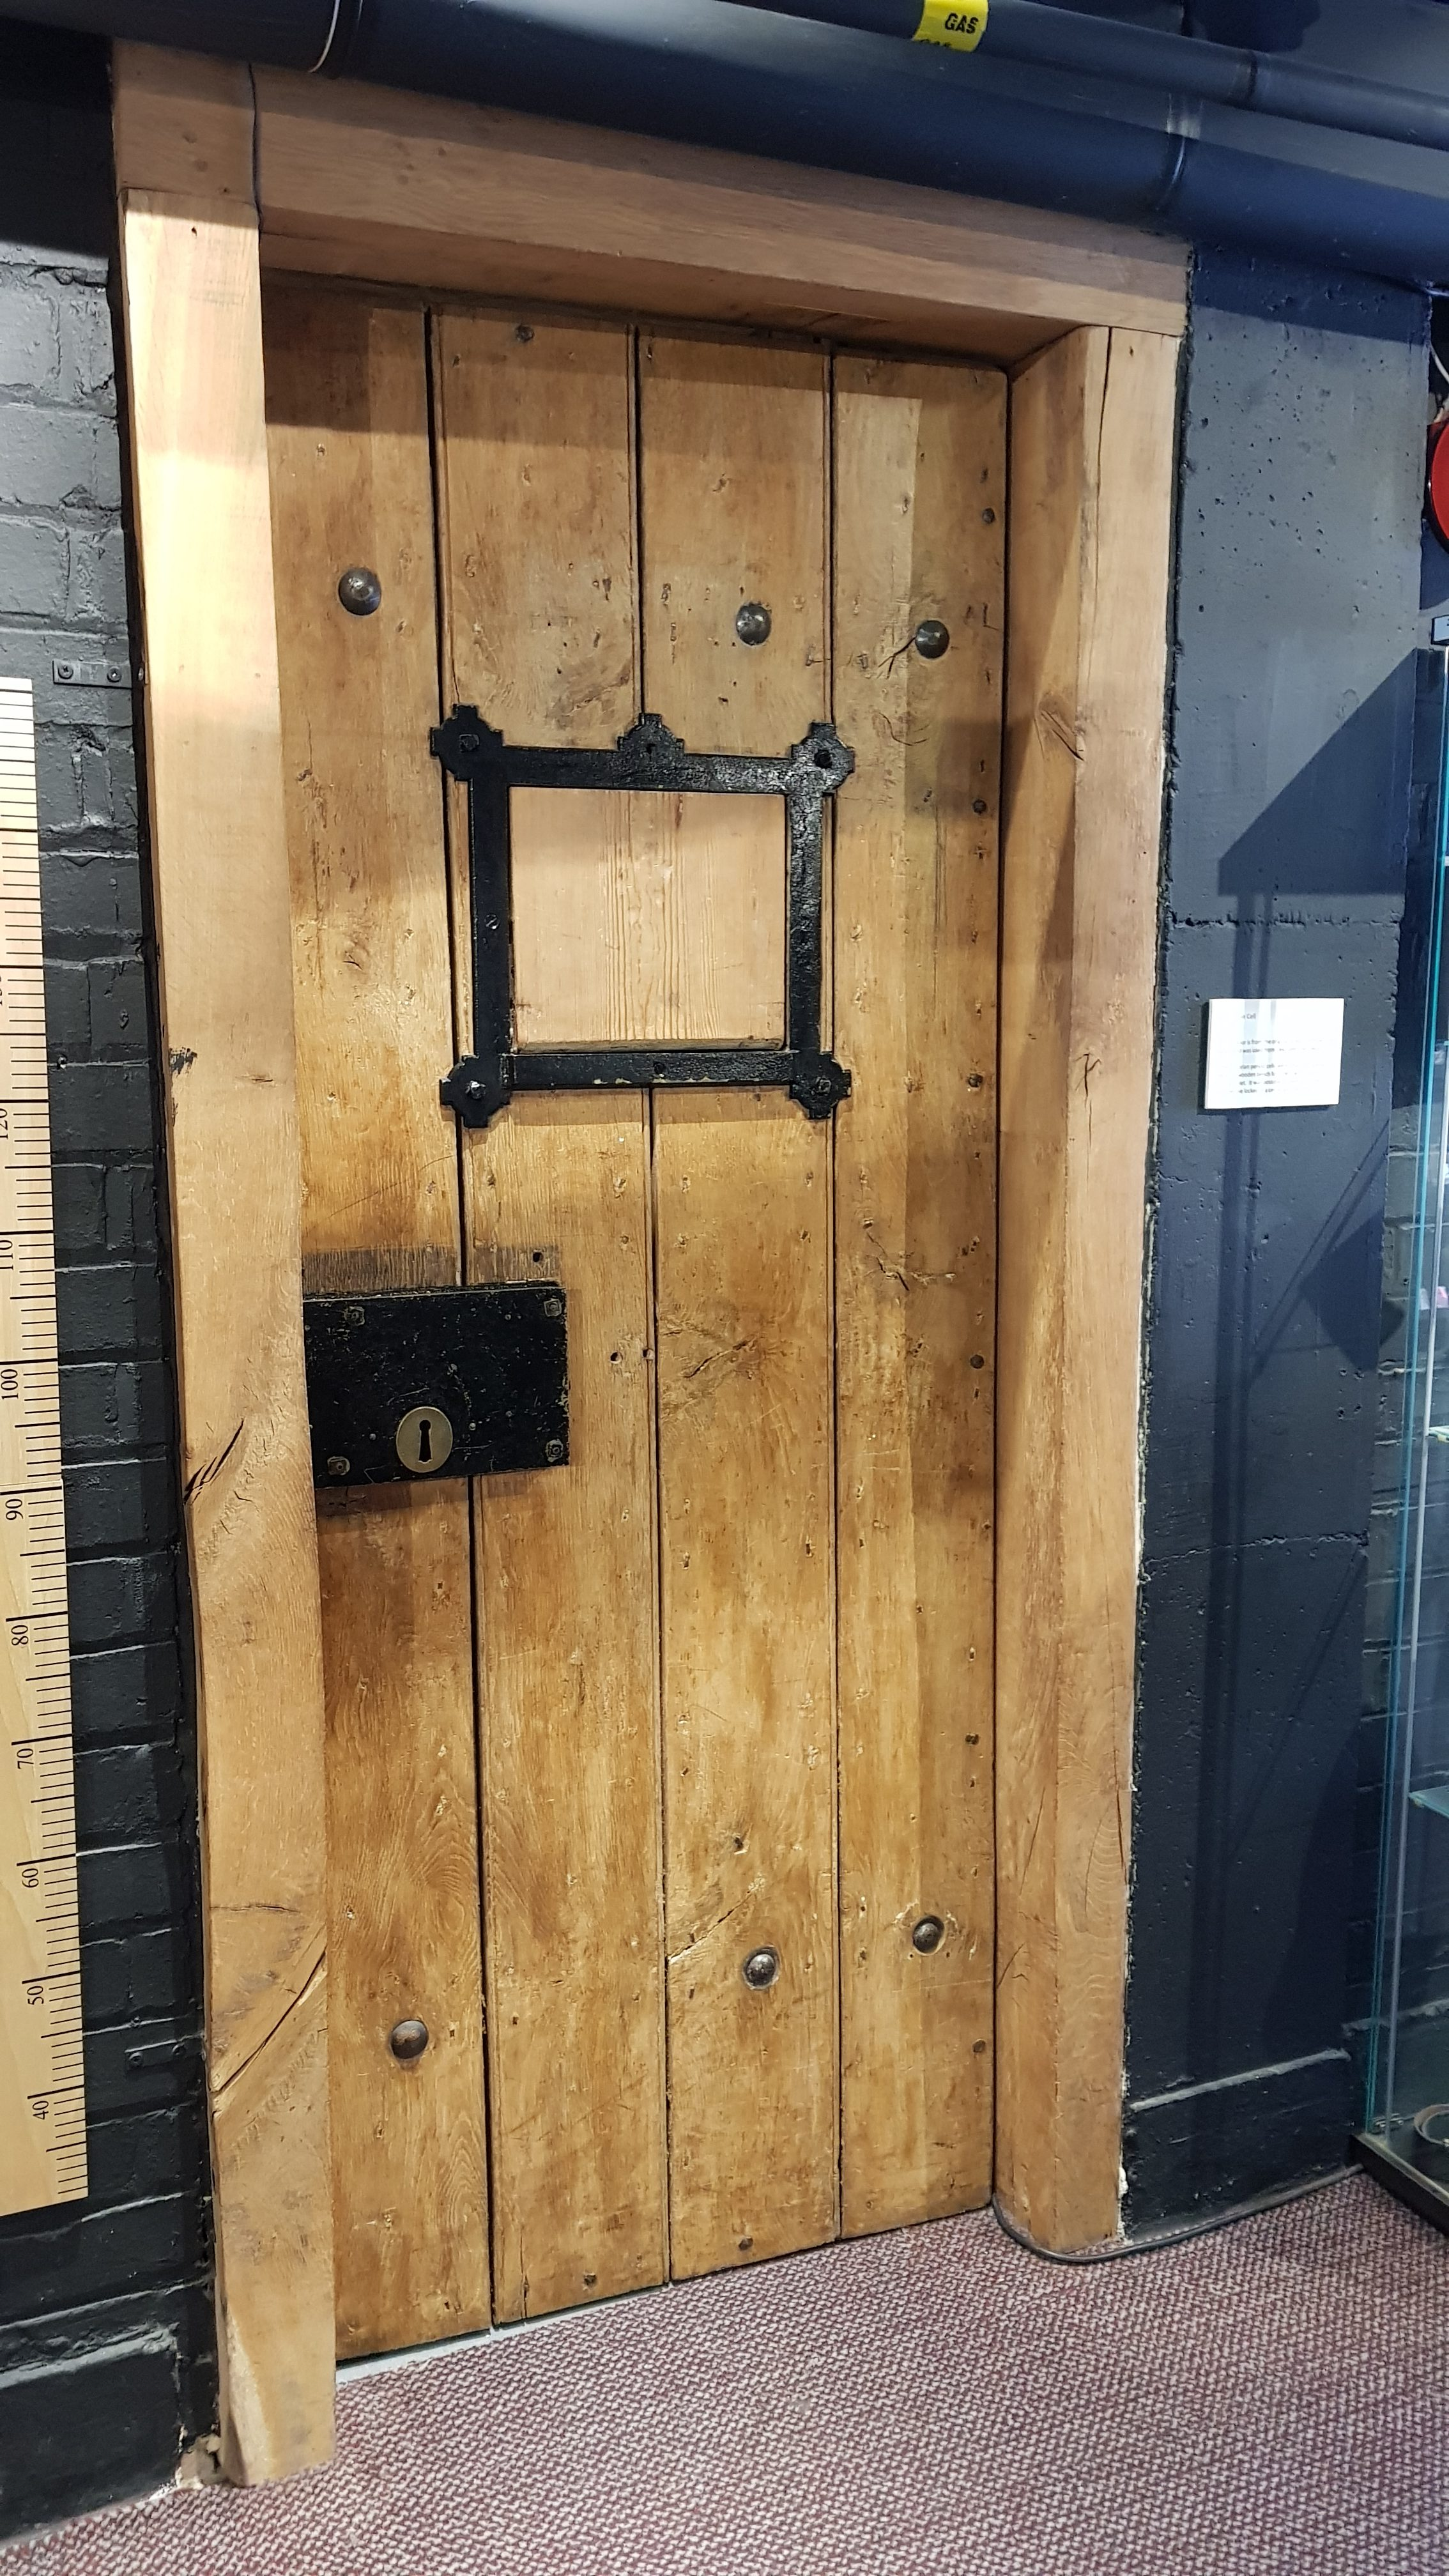 Original cell door from Great Dunmow Police Station, now at Essex Police Museum. Label by the door reads: 'A Victorian Cell. This cell door is from the original Great Dunmow Police Station and was used from 1842 until the 1960s.'